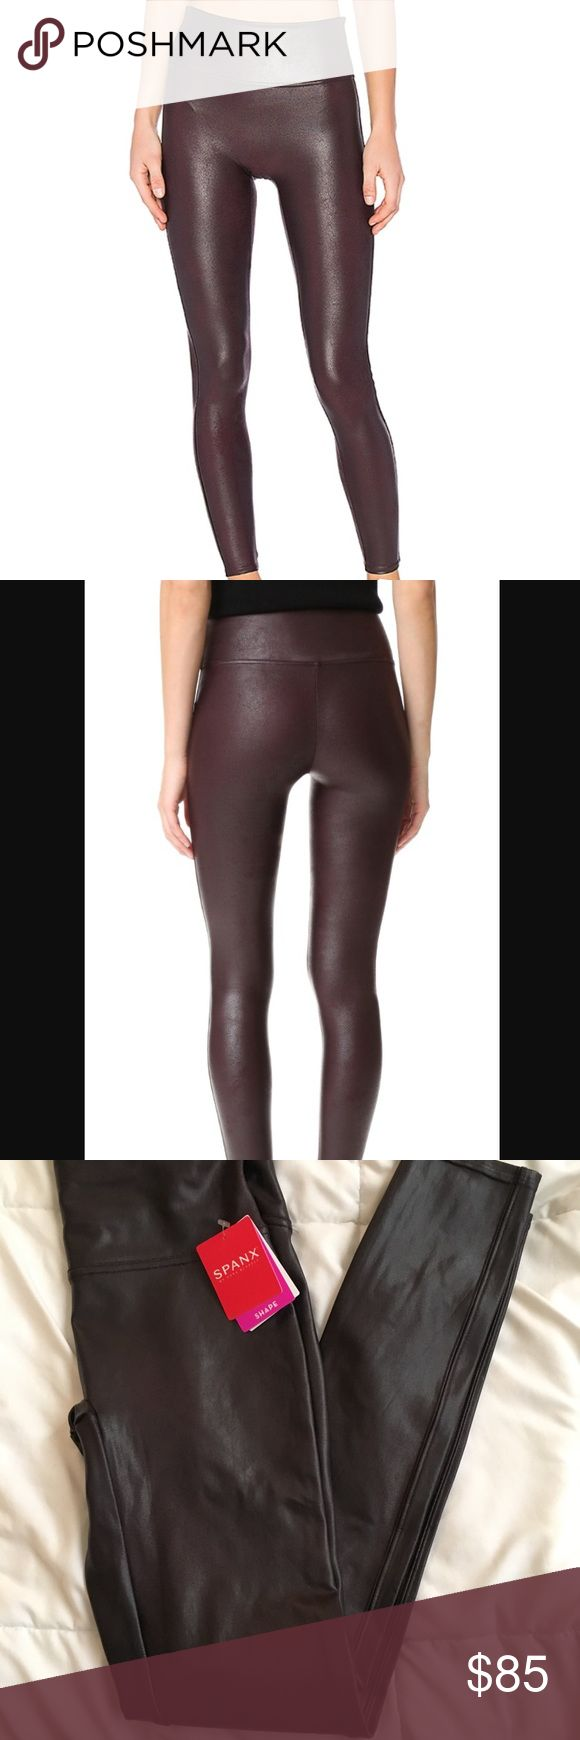 new SPANX faux leggings in wine Never worn Spanx leggings in wine. perfect for the holidays. SPANX Pants Leggings